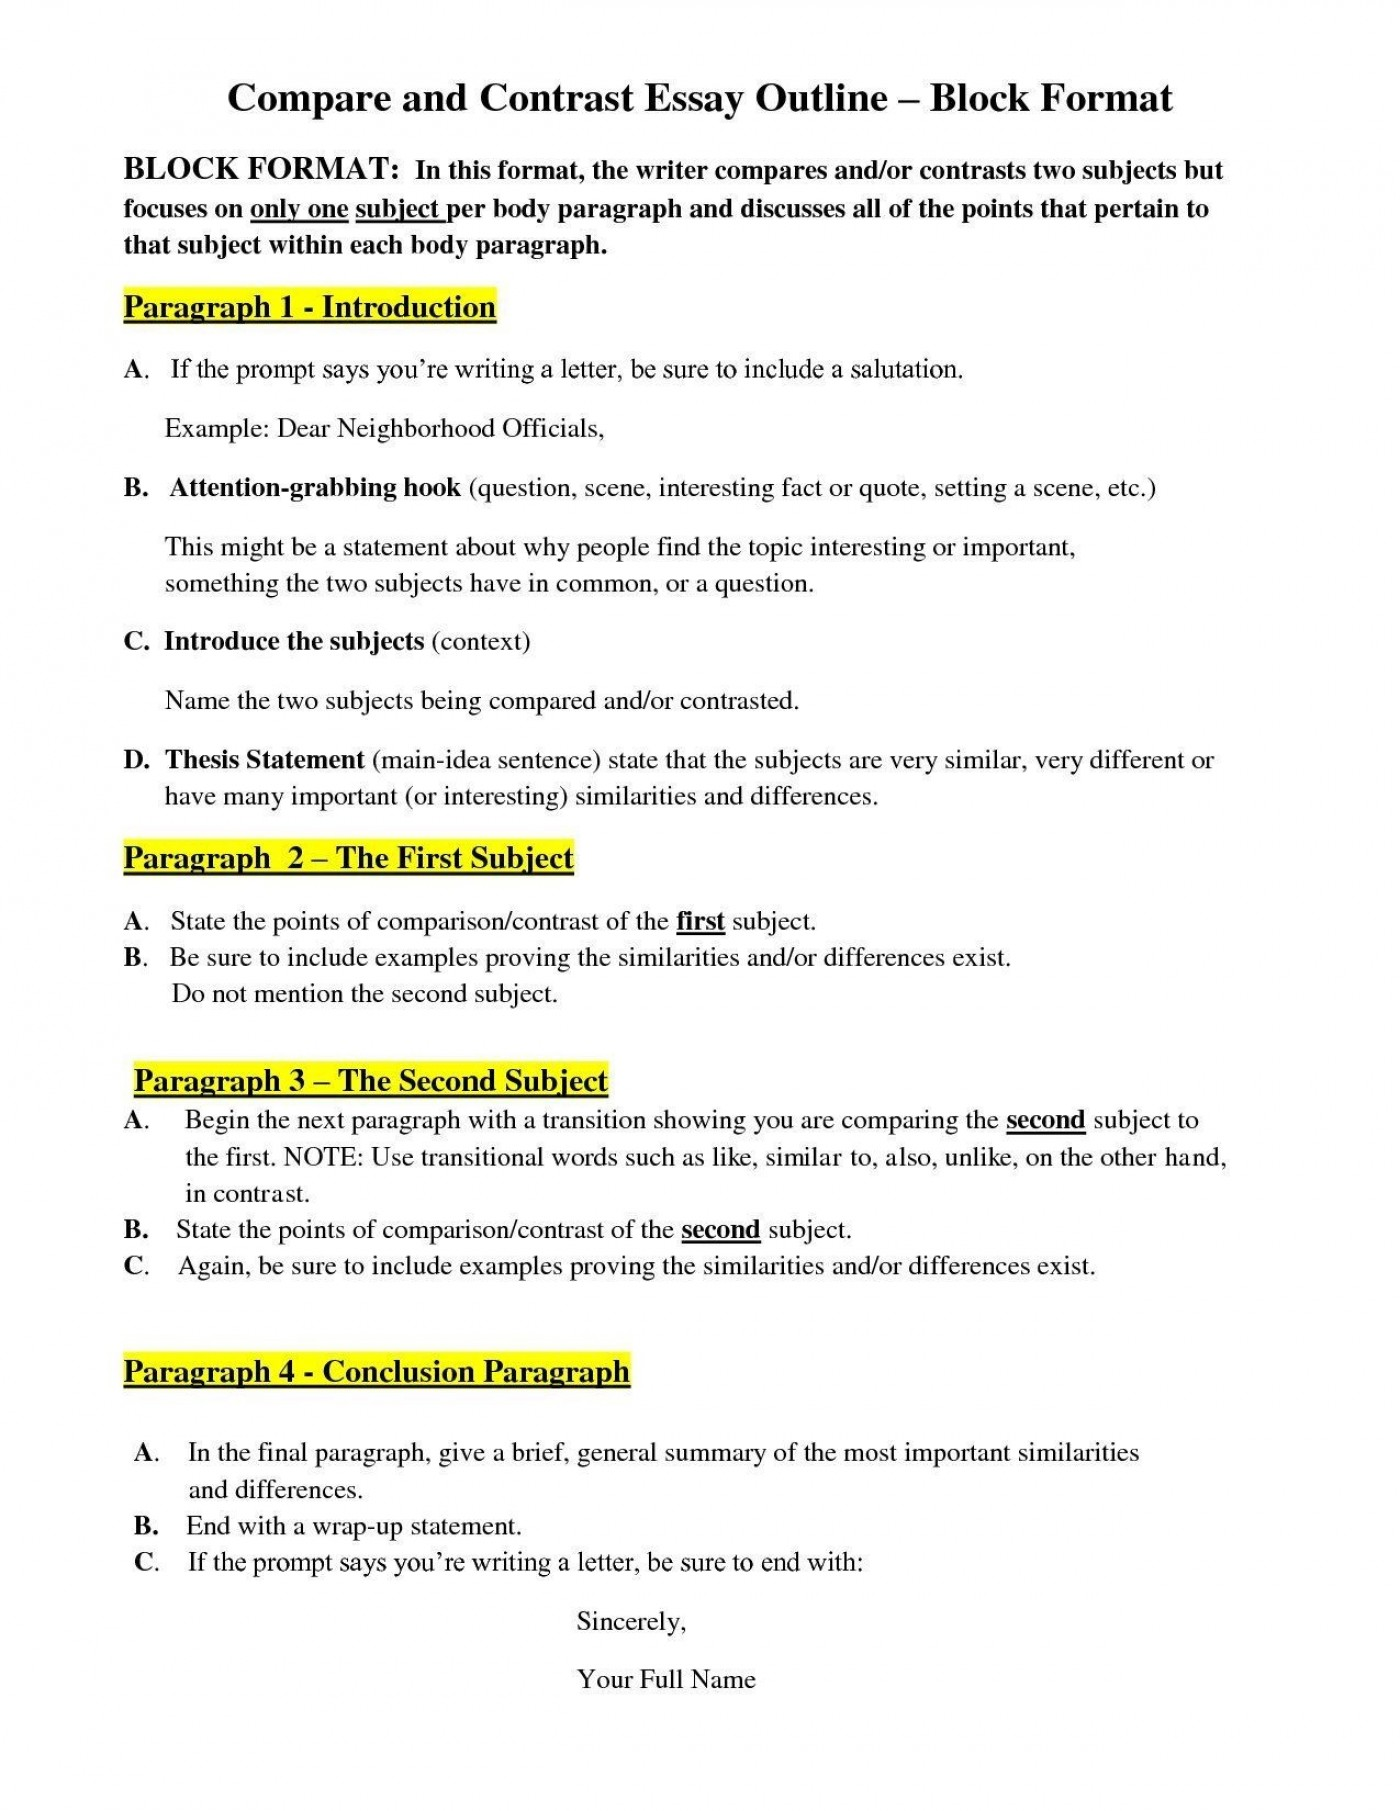 014 Essay Examplempare Andntrastmparison Best Examples Of Scenario In 6th Grade An Goo 3rd Food 5th Middle School Block Format Pdf High 4th Vs Striking Compare And Contrast Example Elementary Fourth For College Students 1400